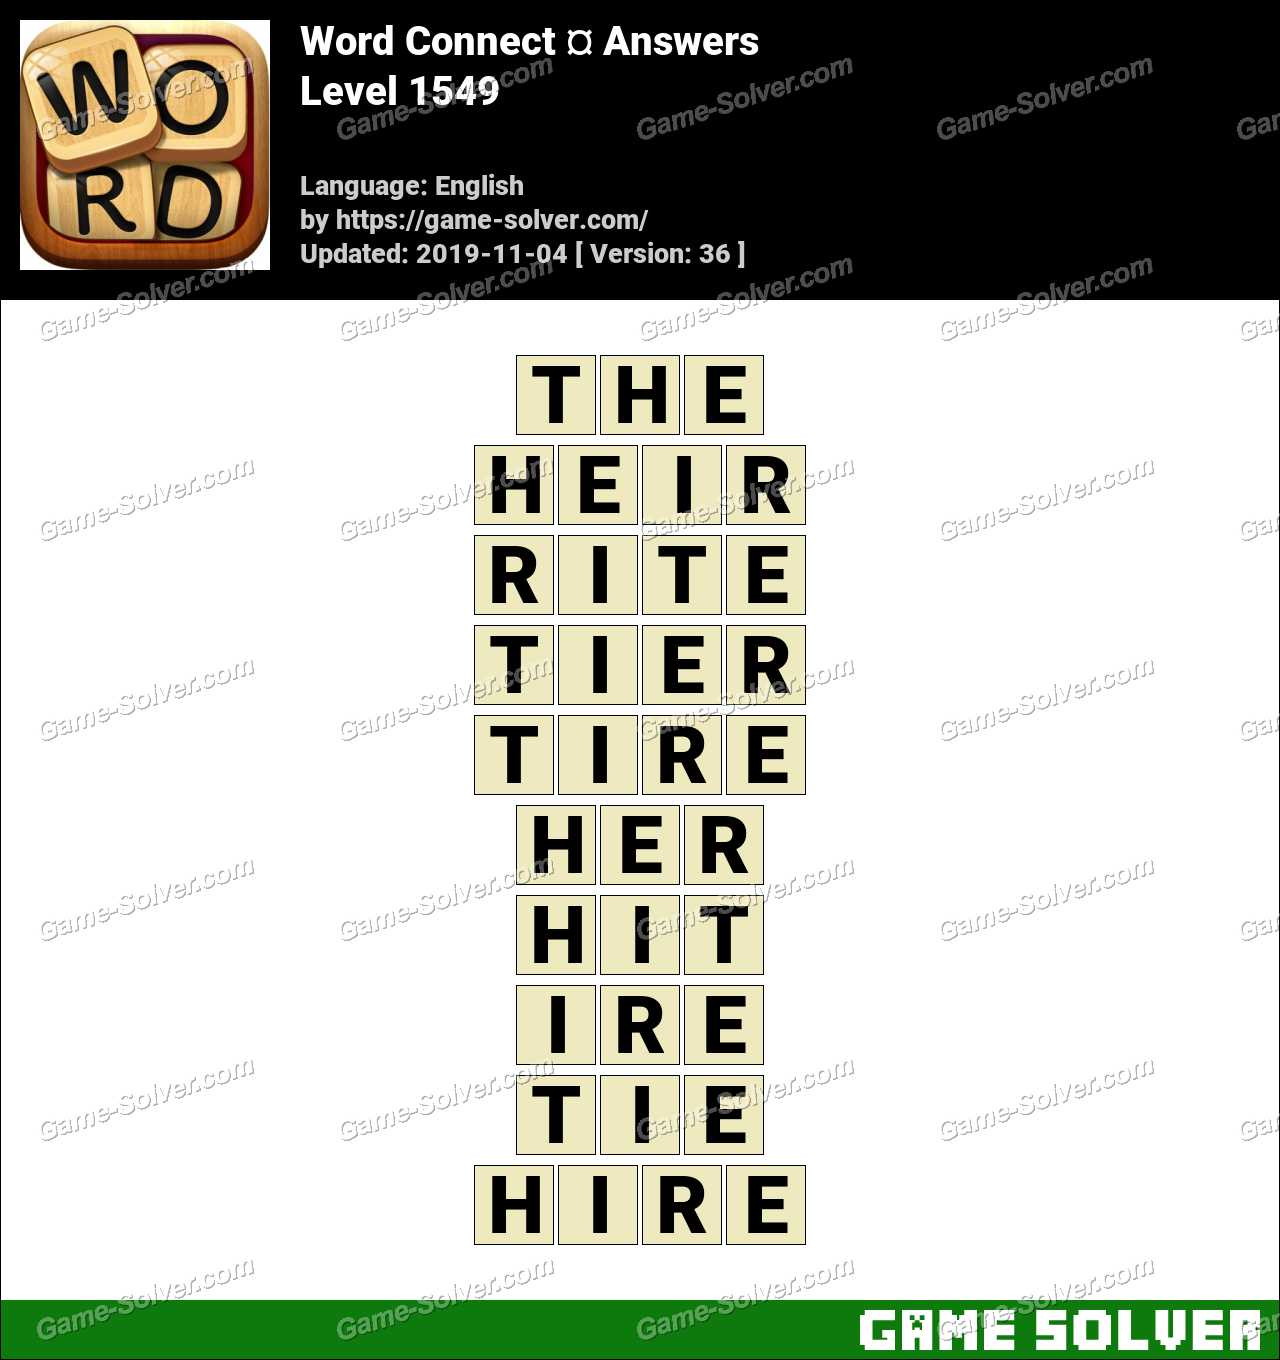 Word Connect Level 1549 Answers